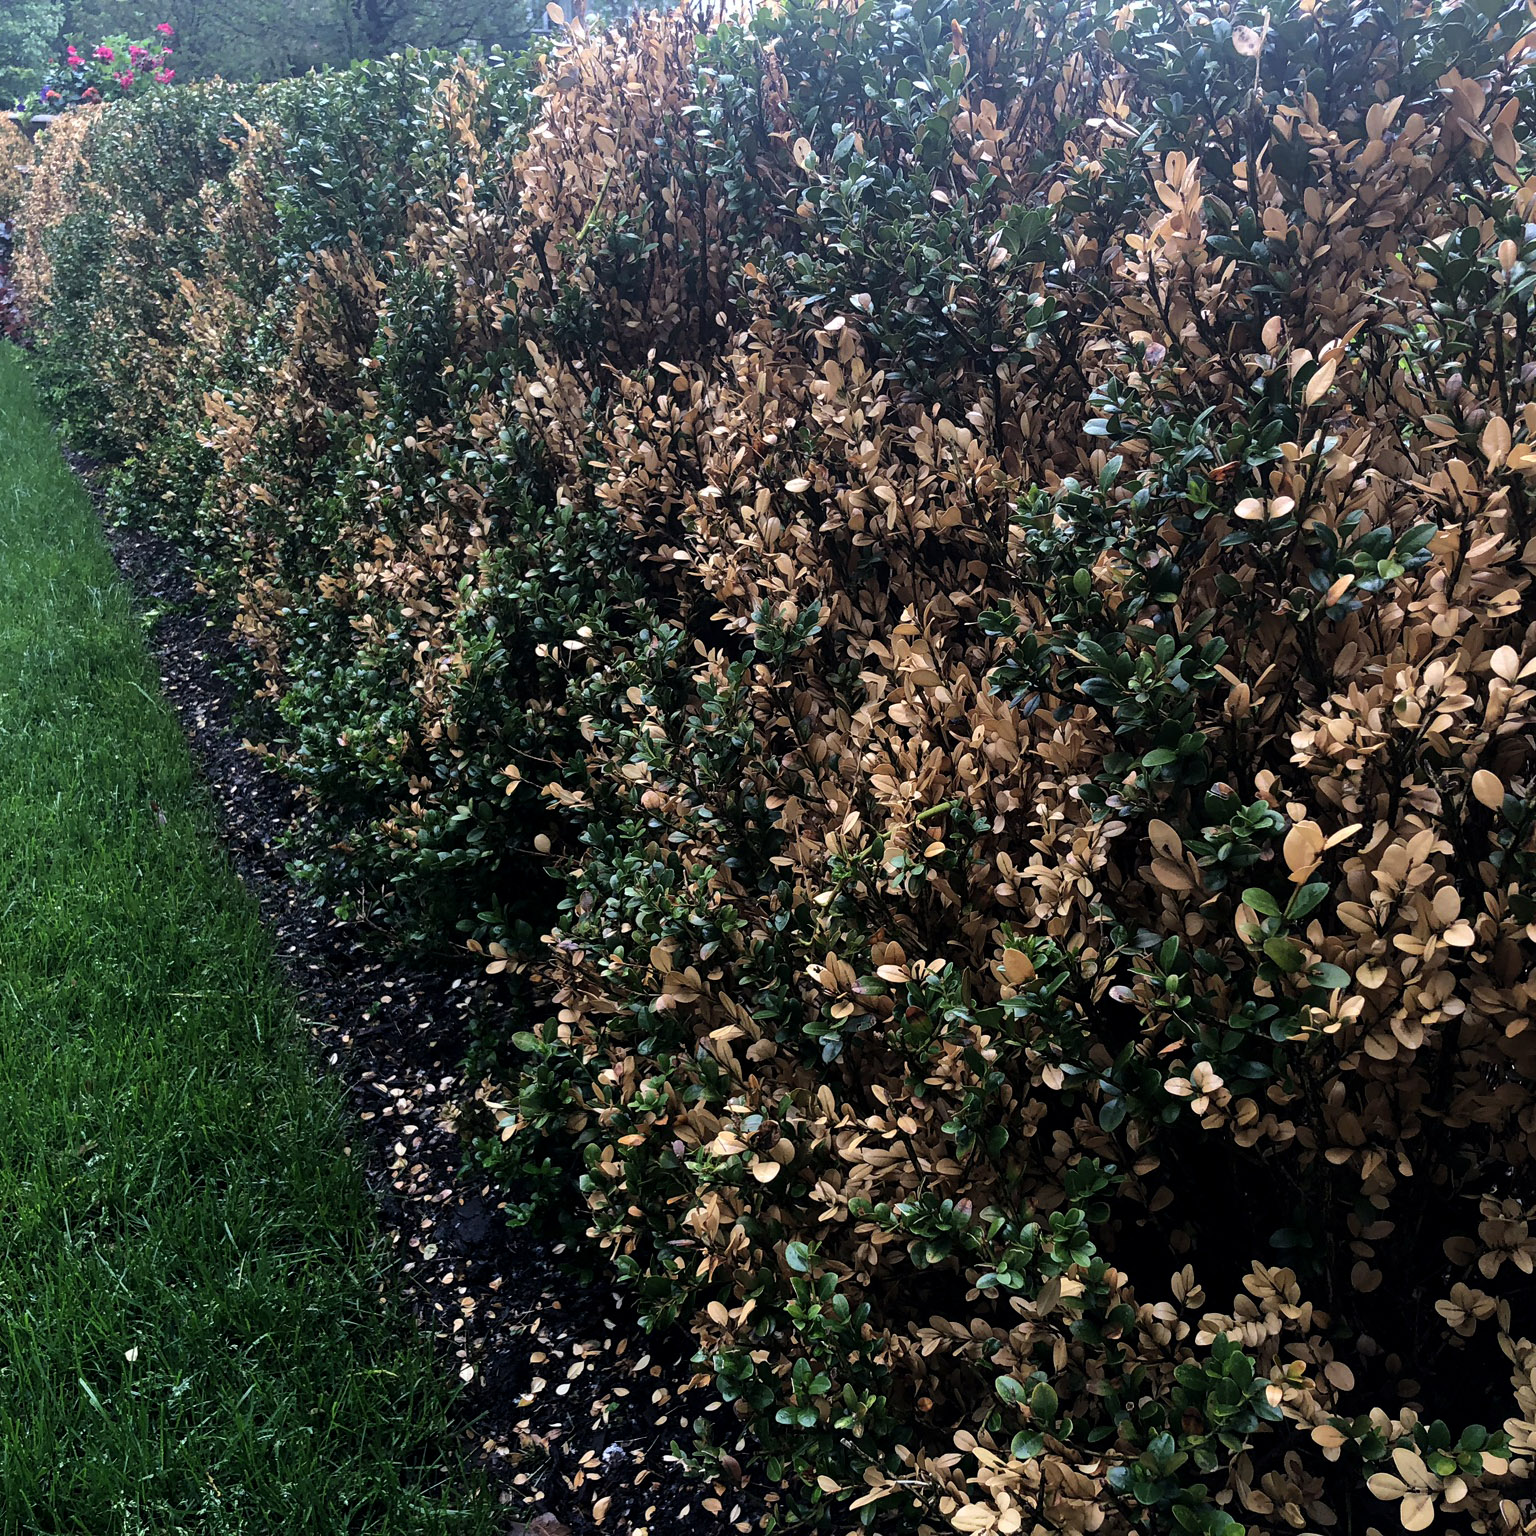 Typical winter injury on a boxwood hedge. The damage is focused on outer most growth and has a clean, bronzed appearance.